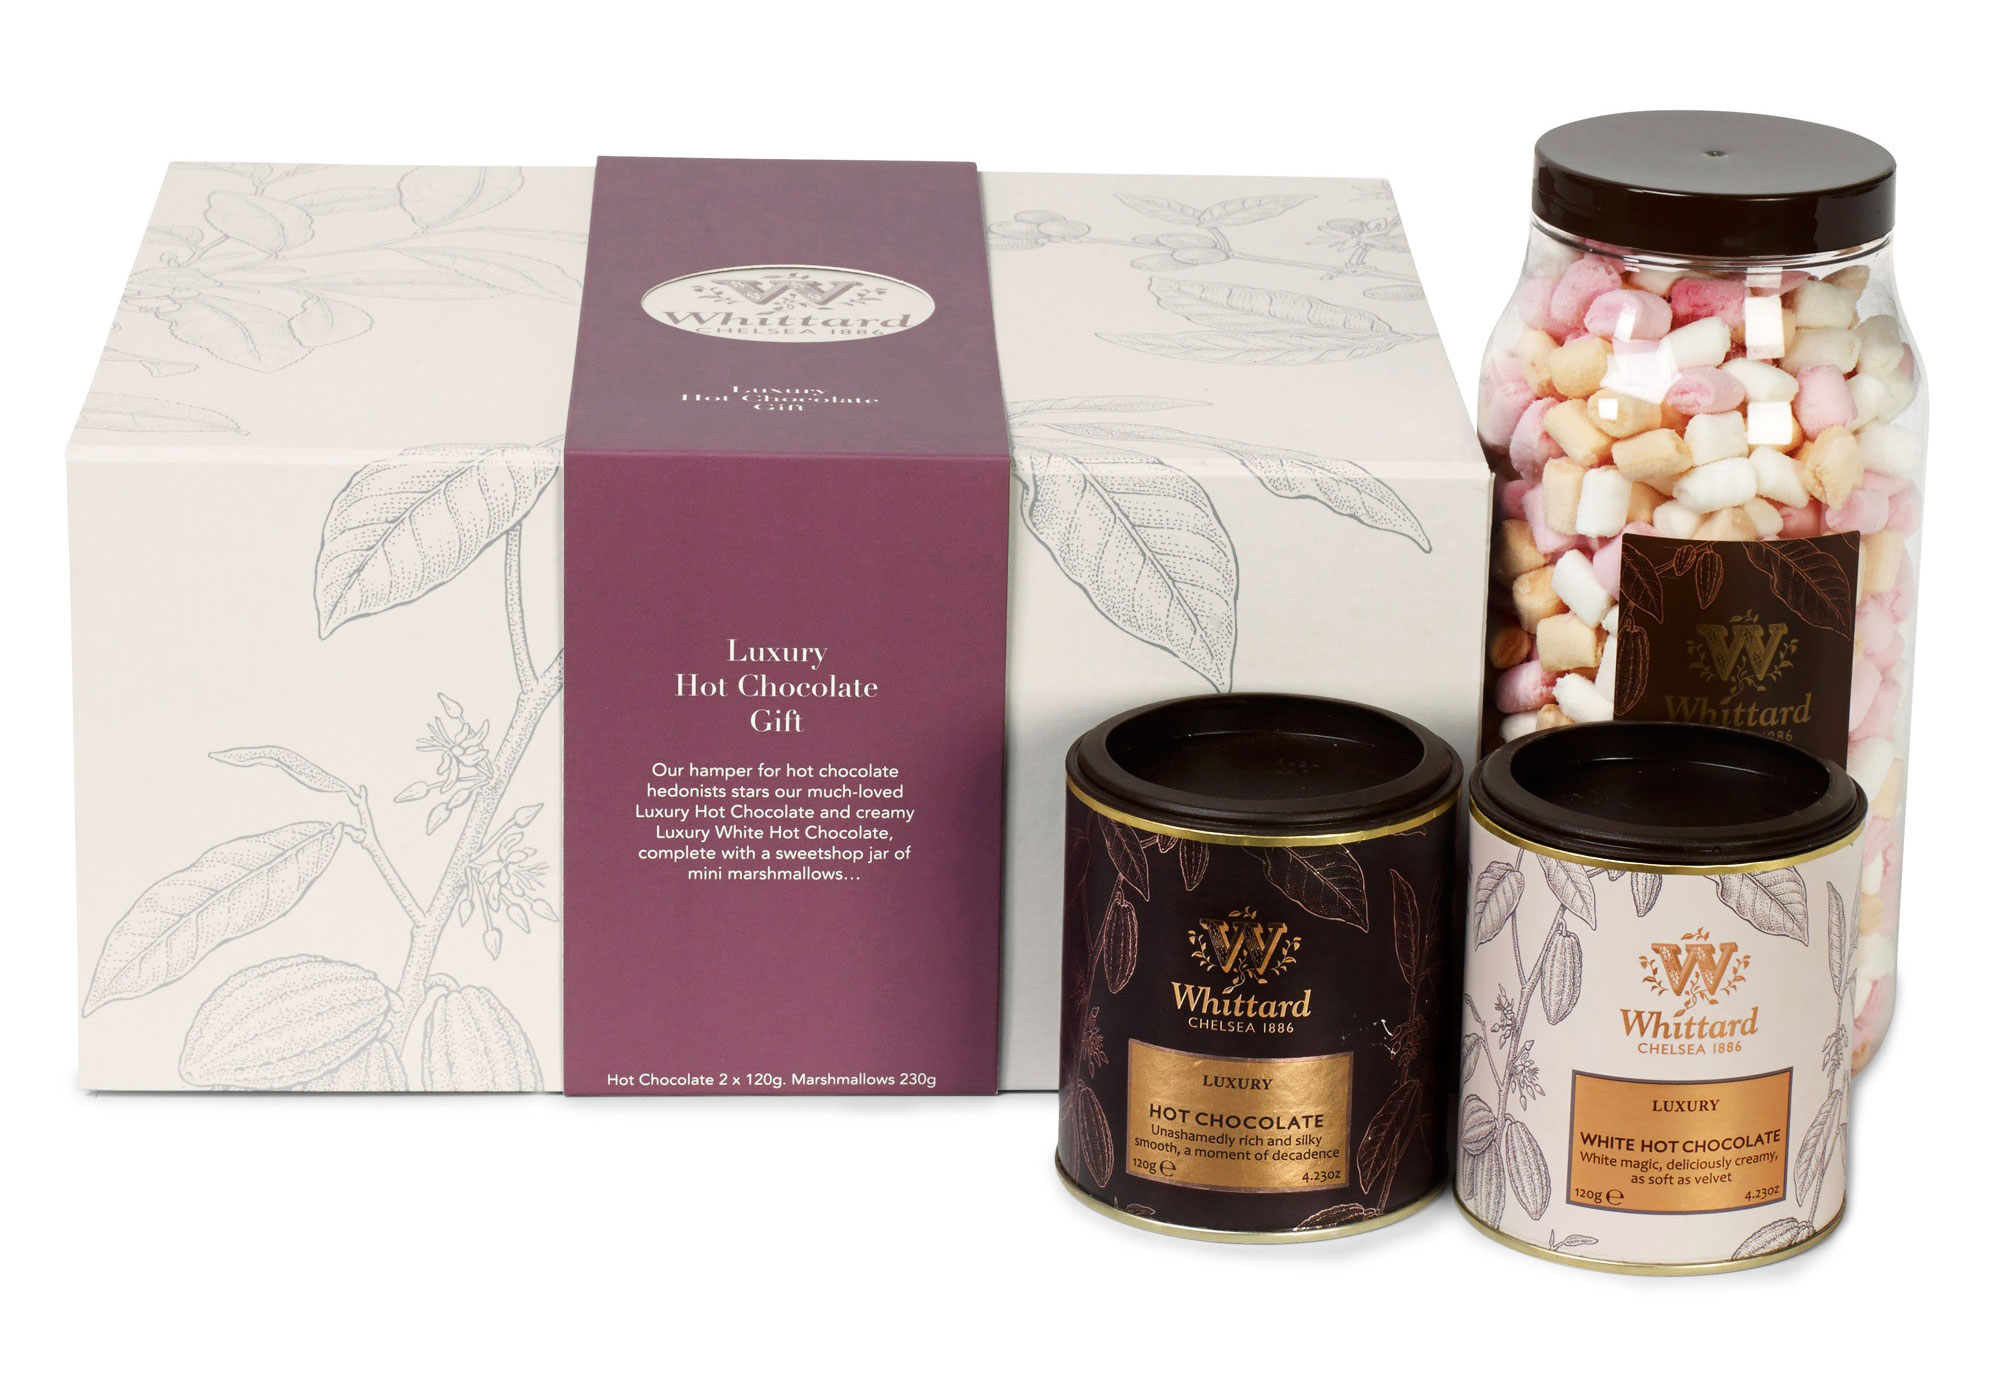 Whittard Luxury Hot Chocolate Hamper